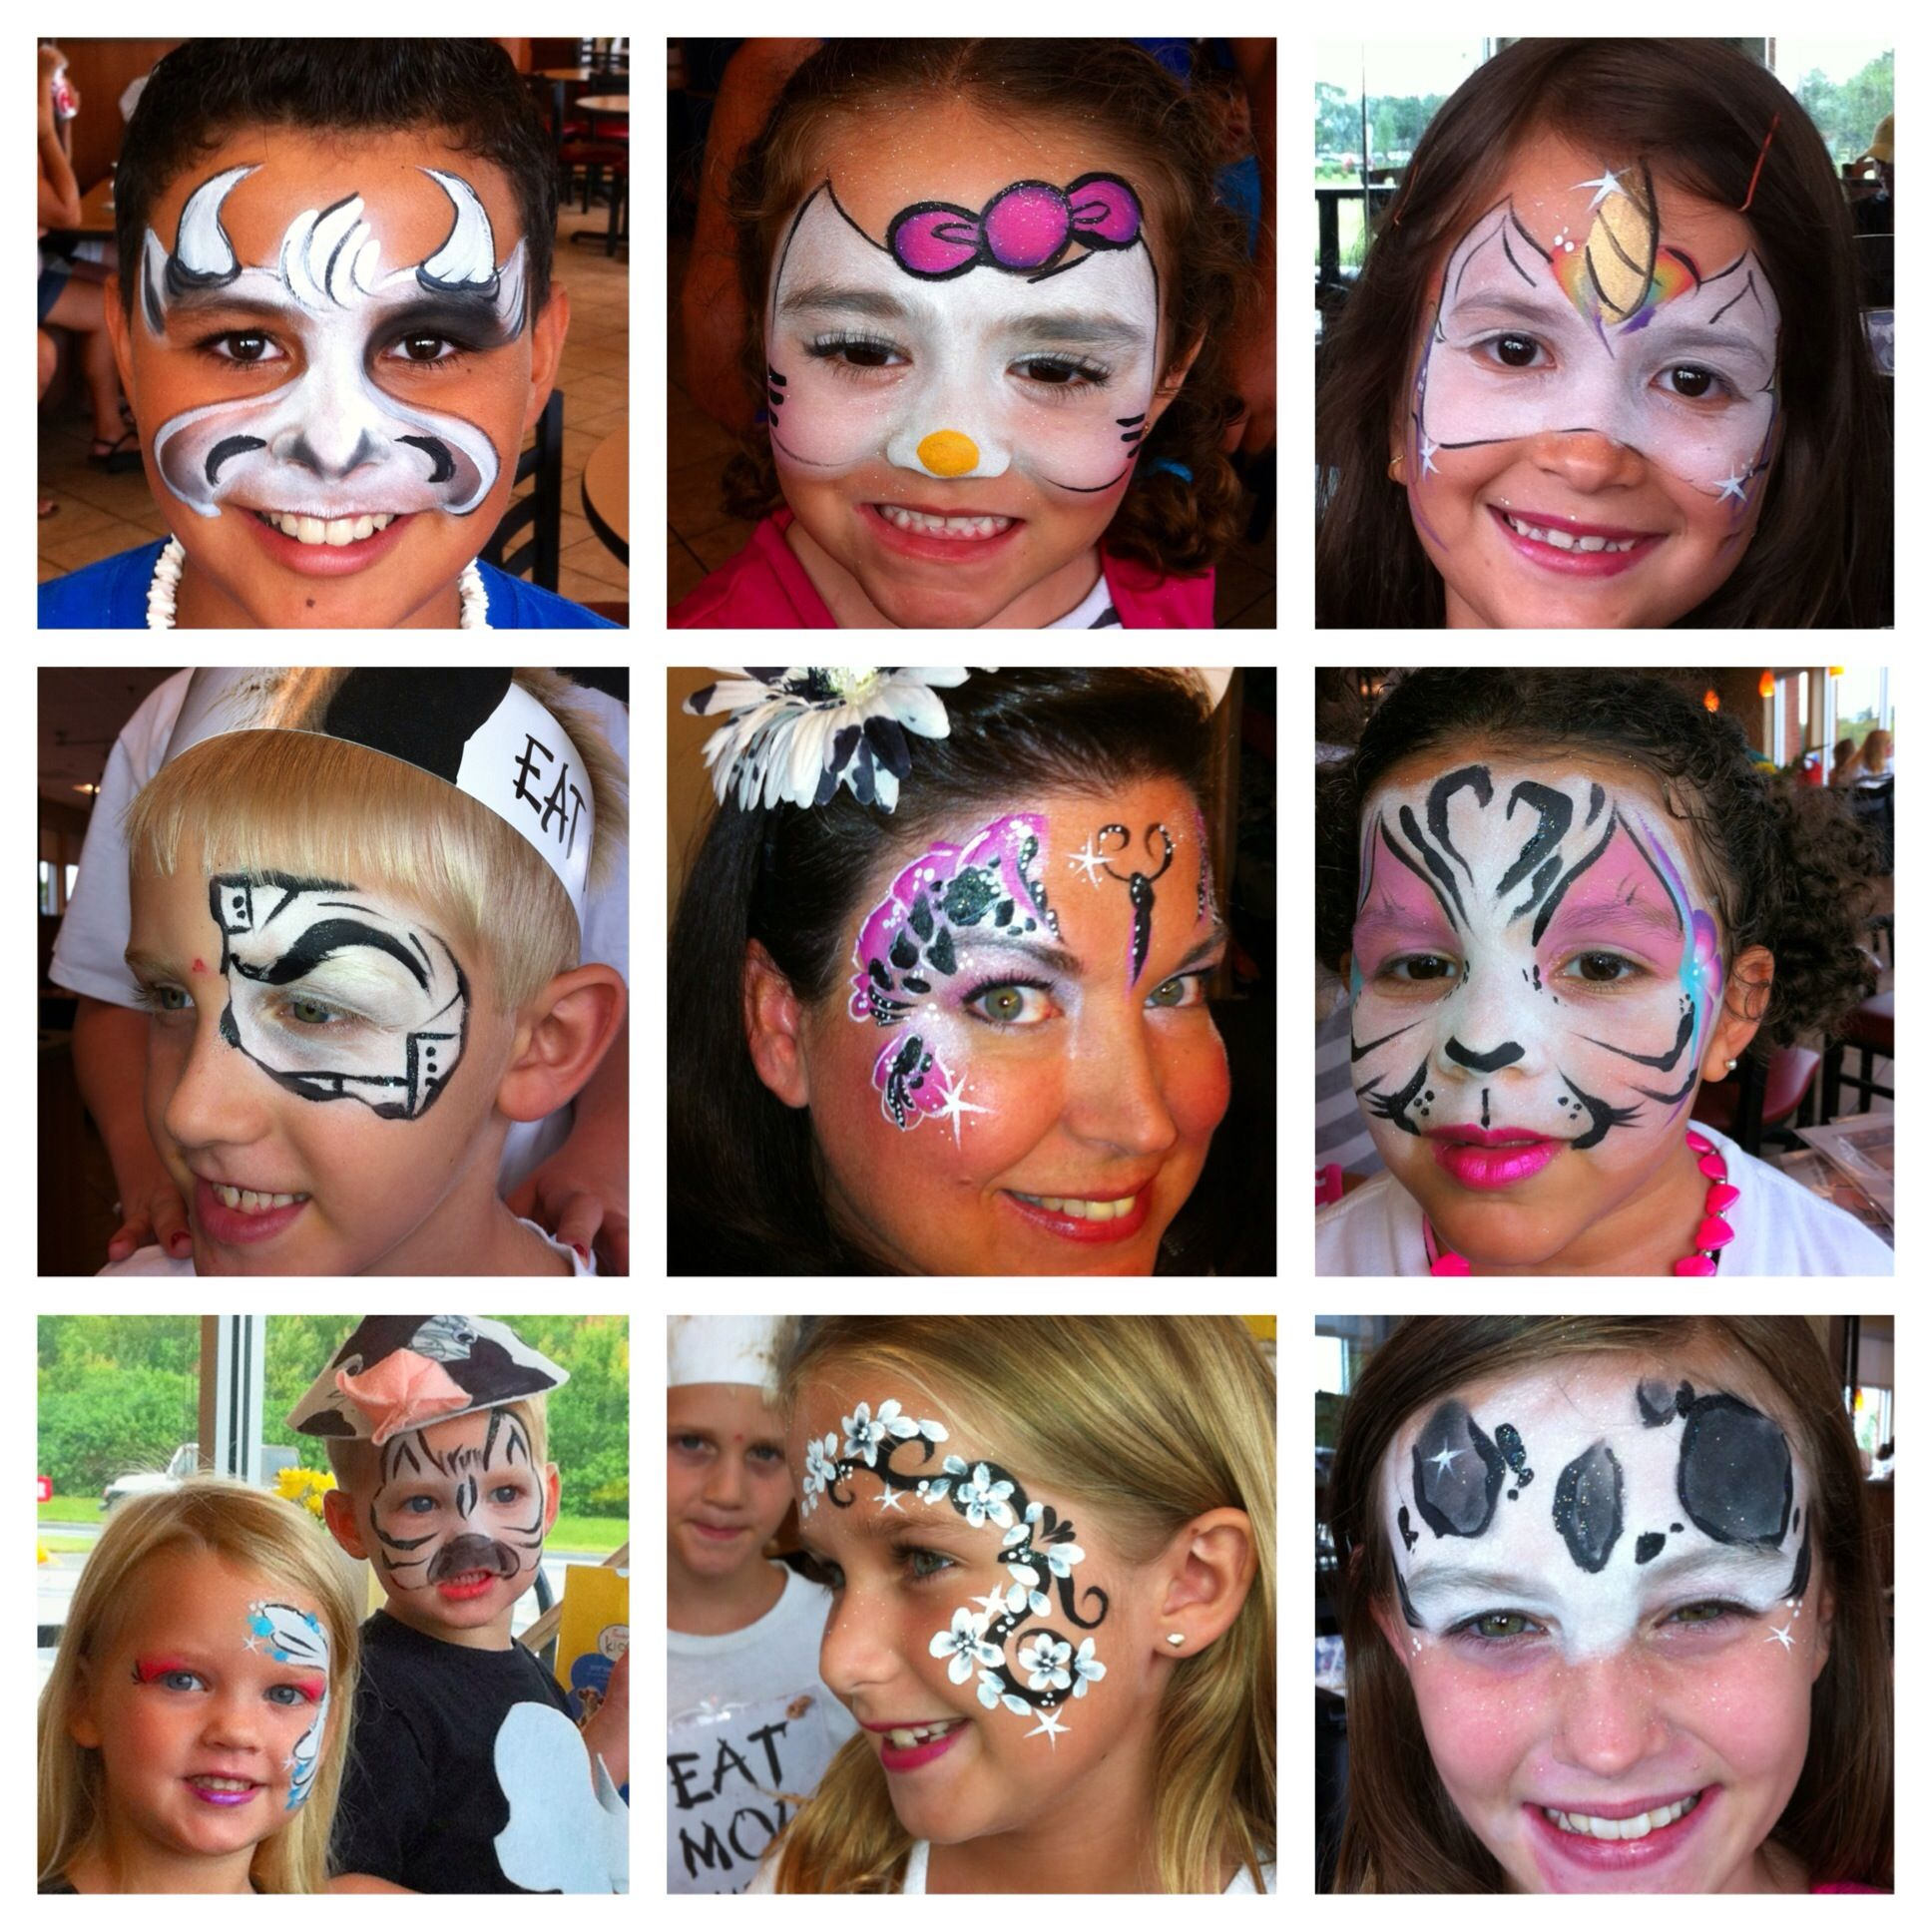 Painting at Lee Vista Chick-fil-A in Orlando, Florida Cow Appreciation Day July 2013. I use a lot of white Star Blends, my magpie Tag one stroke, Dfx white and Paradise black.  fb: Amazing Face by Amanda Nelson  Face paint Chick-fil-A Cow Bull Zebra